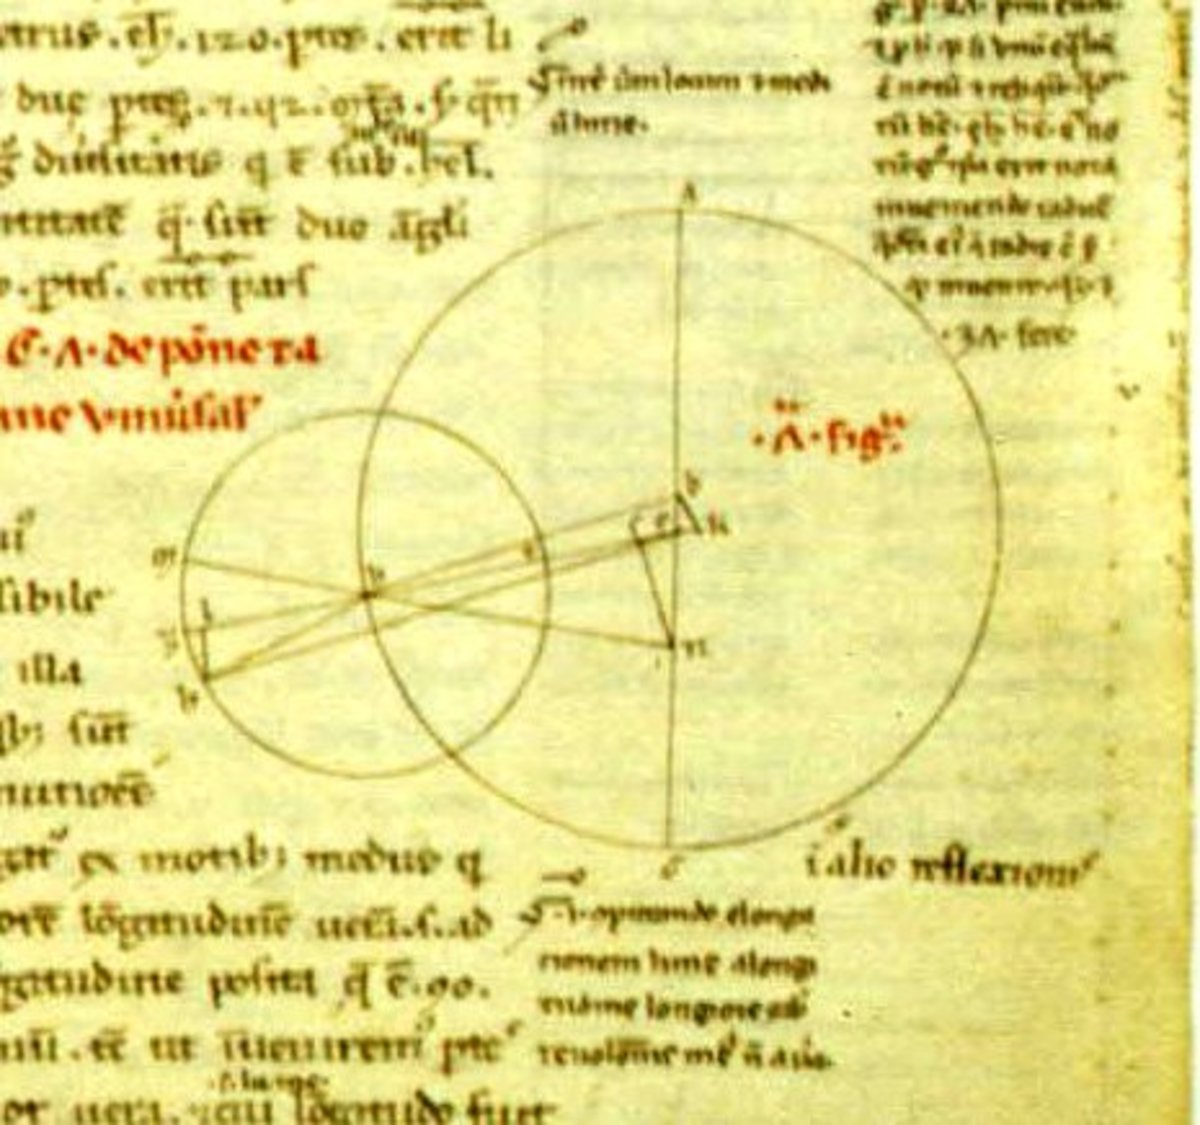 A portion of the Algamest displaying the epicycle model.